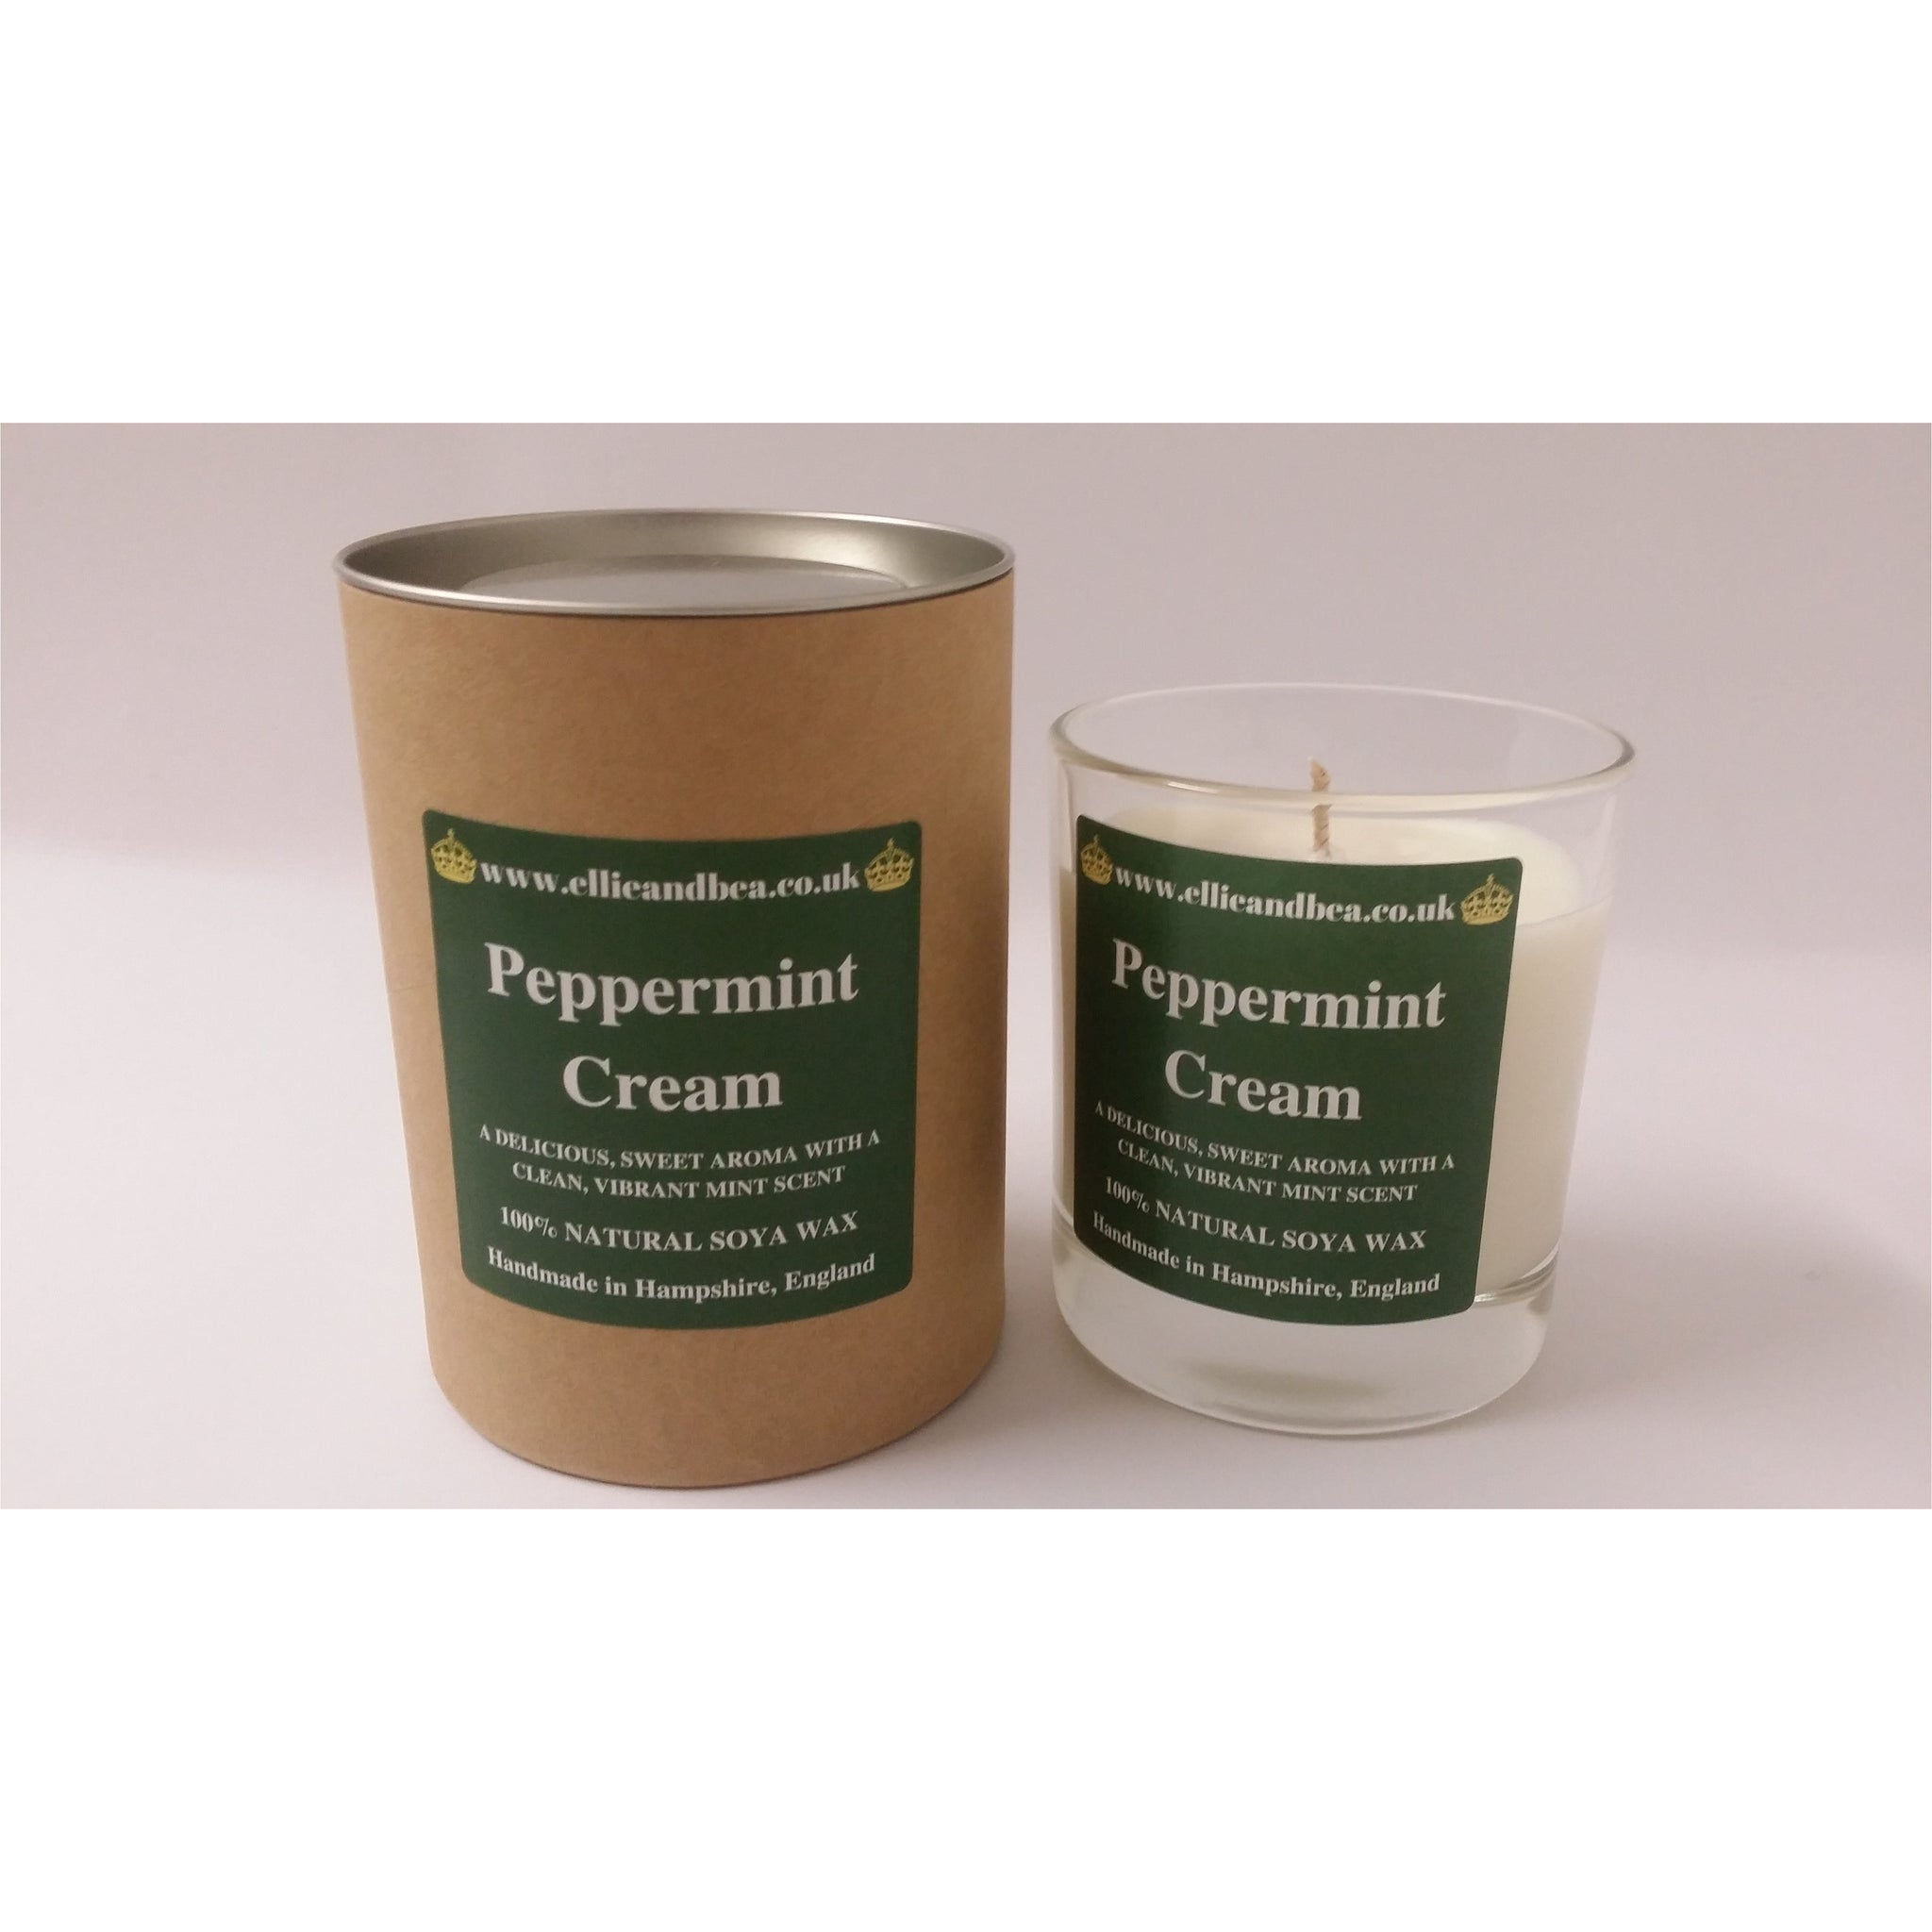 Ellie and Bea Peppermint Cream Candle (220g)